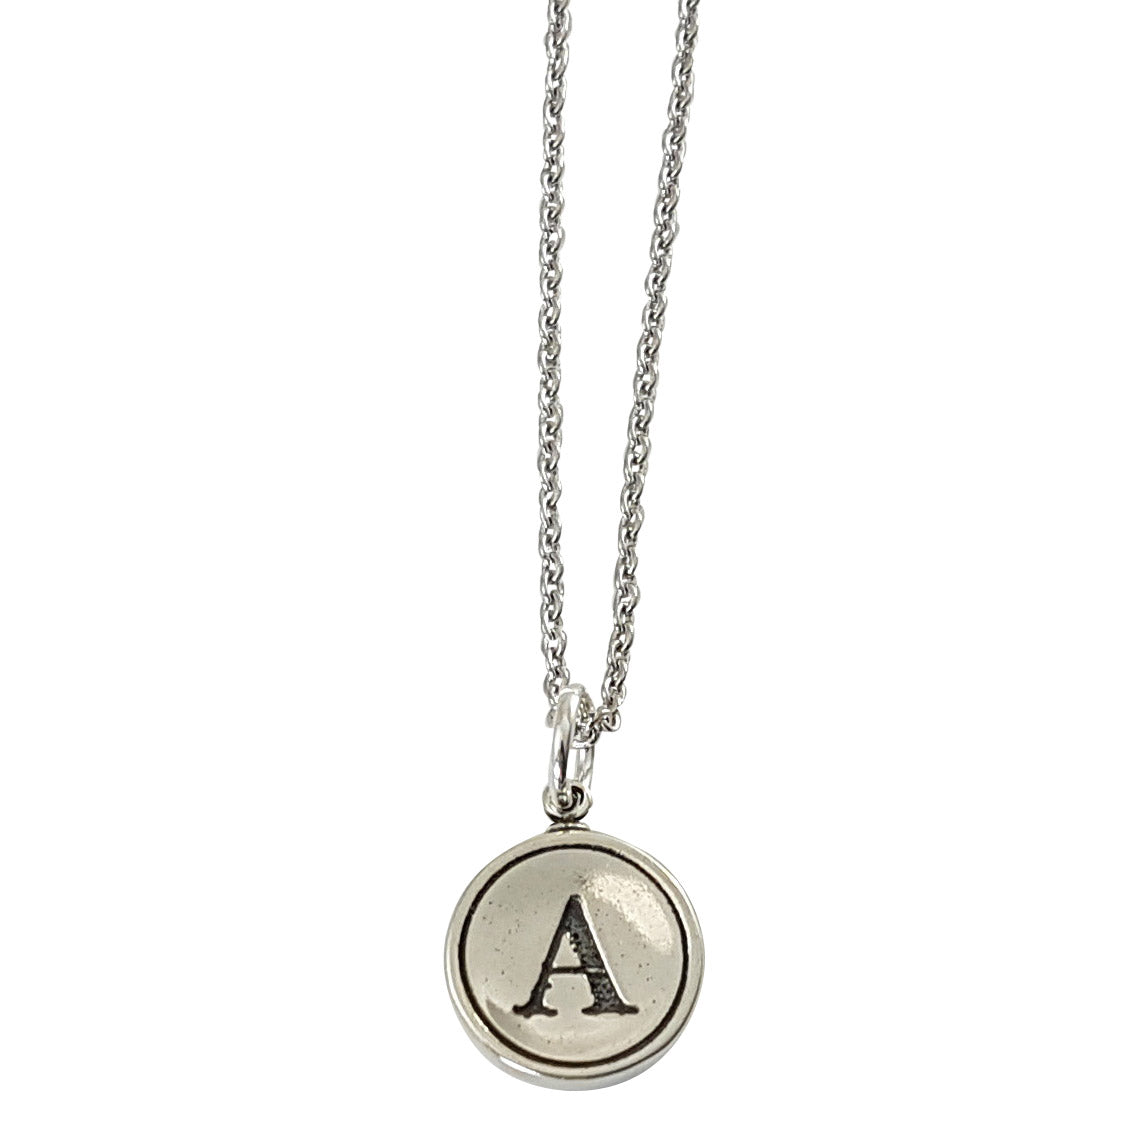 Initial Letter Charm Necklace - Gwen Delicious Jewelry Designs